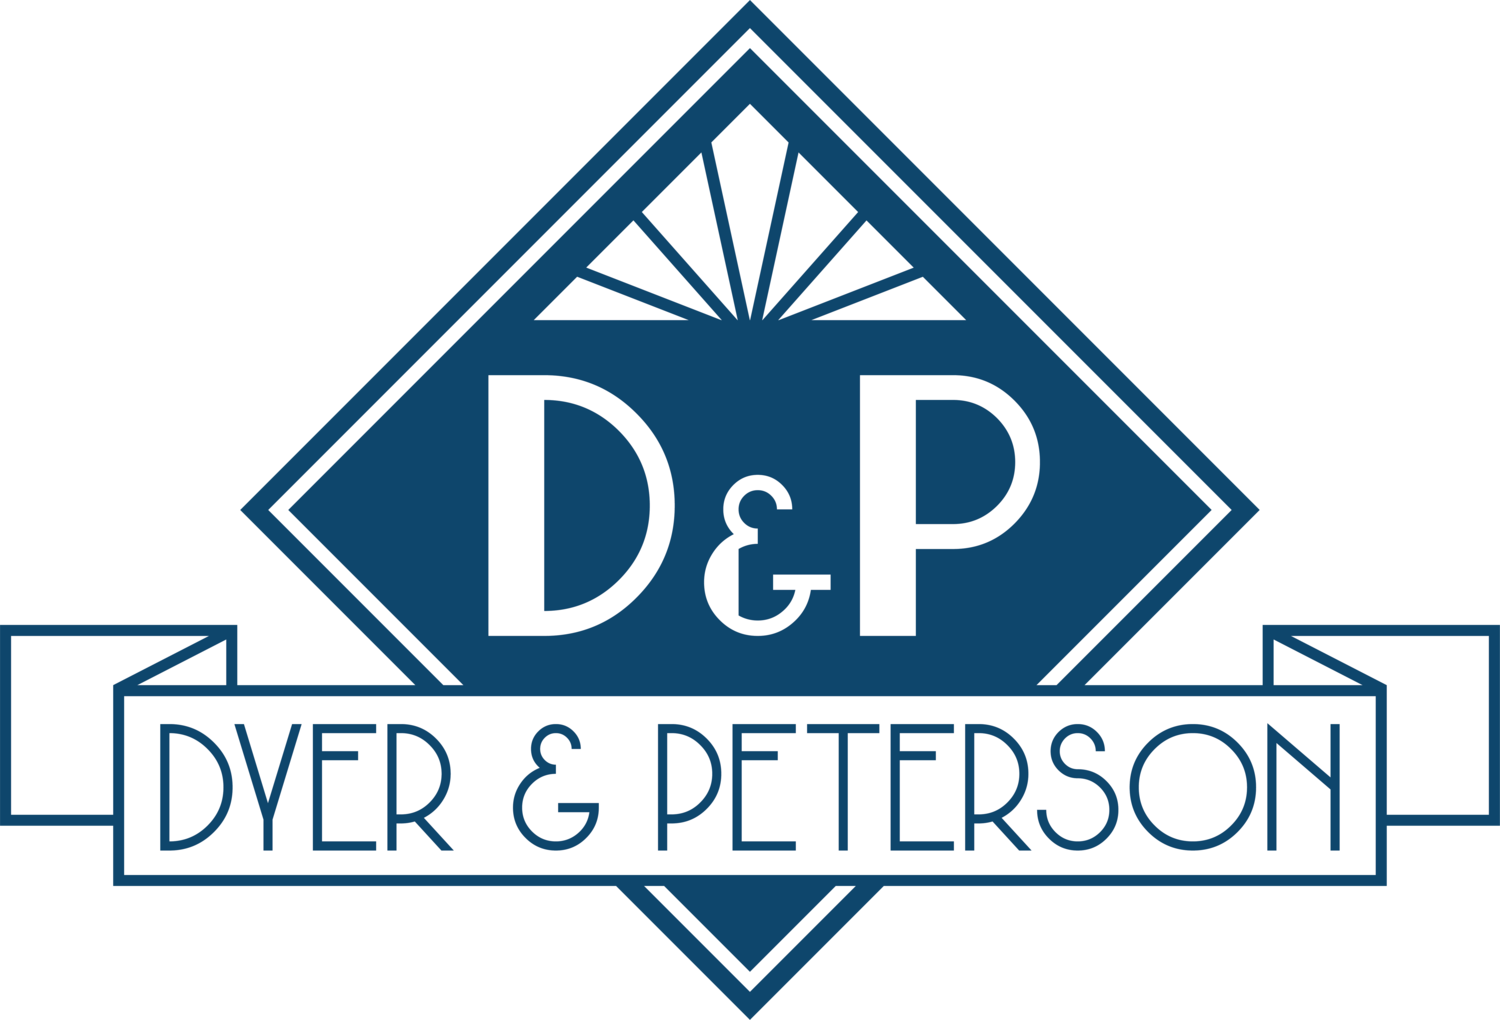 Dyer & Peterson